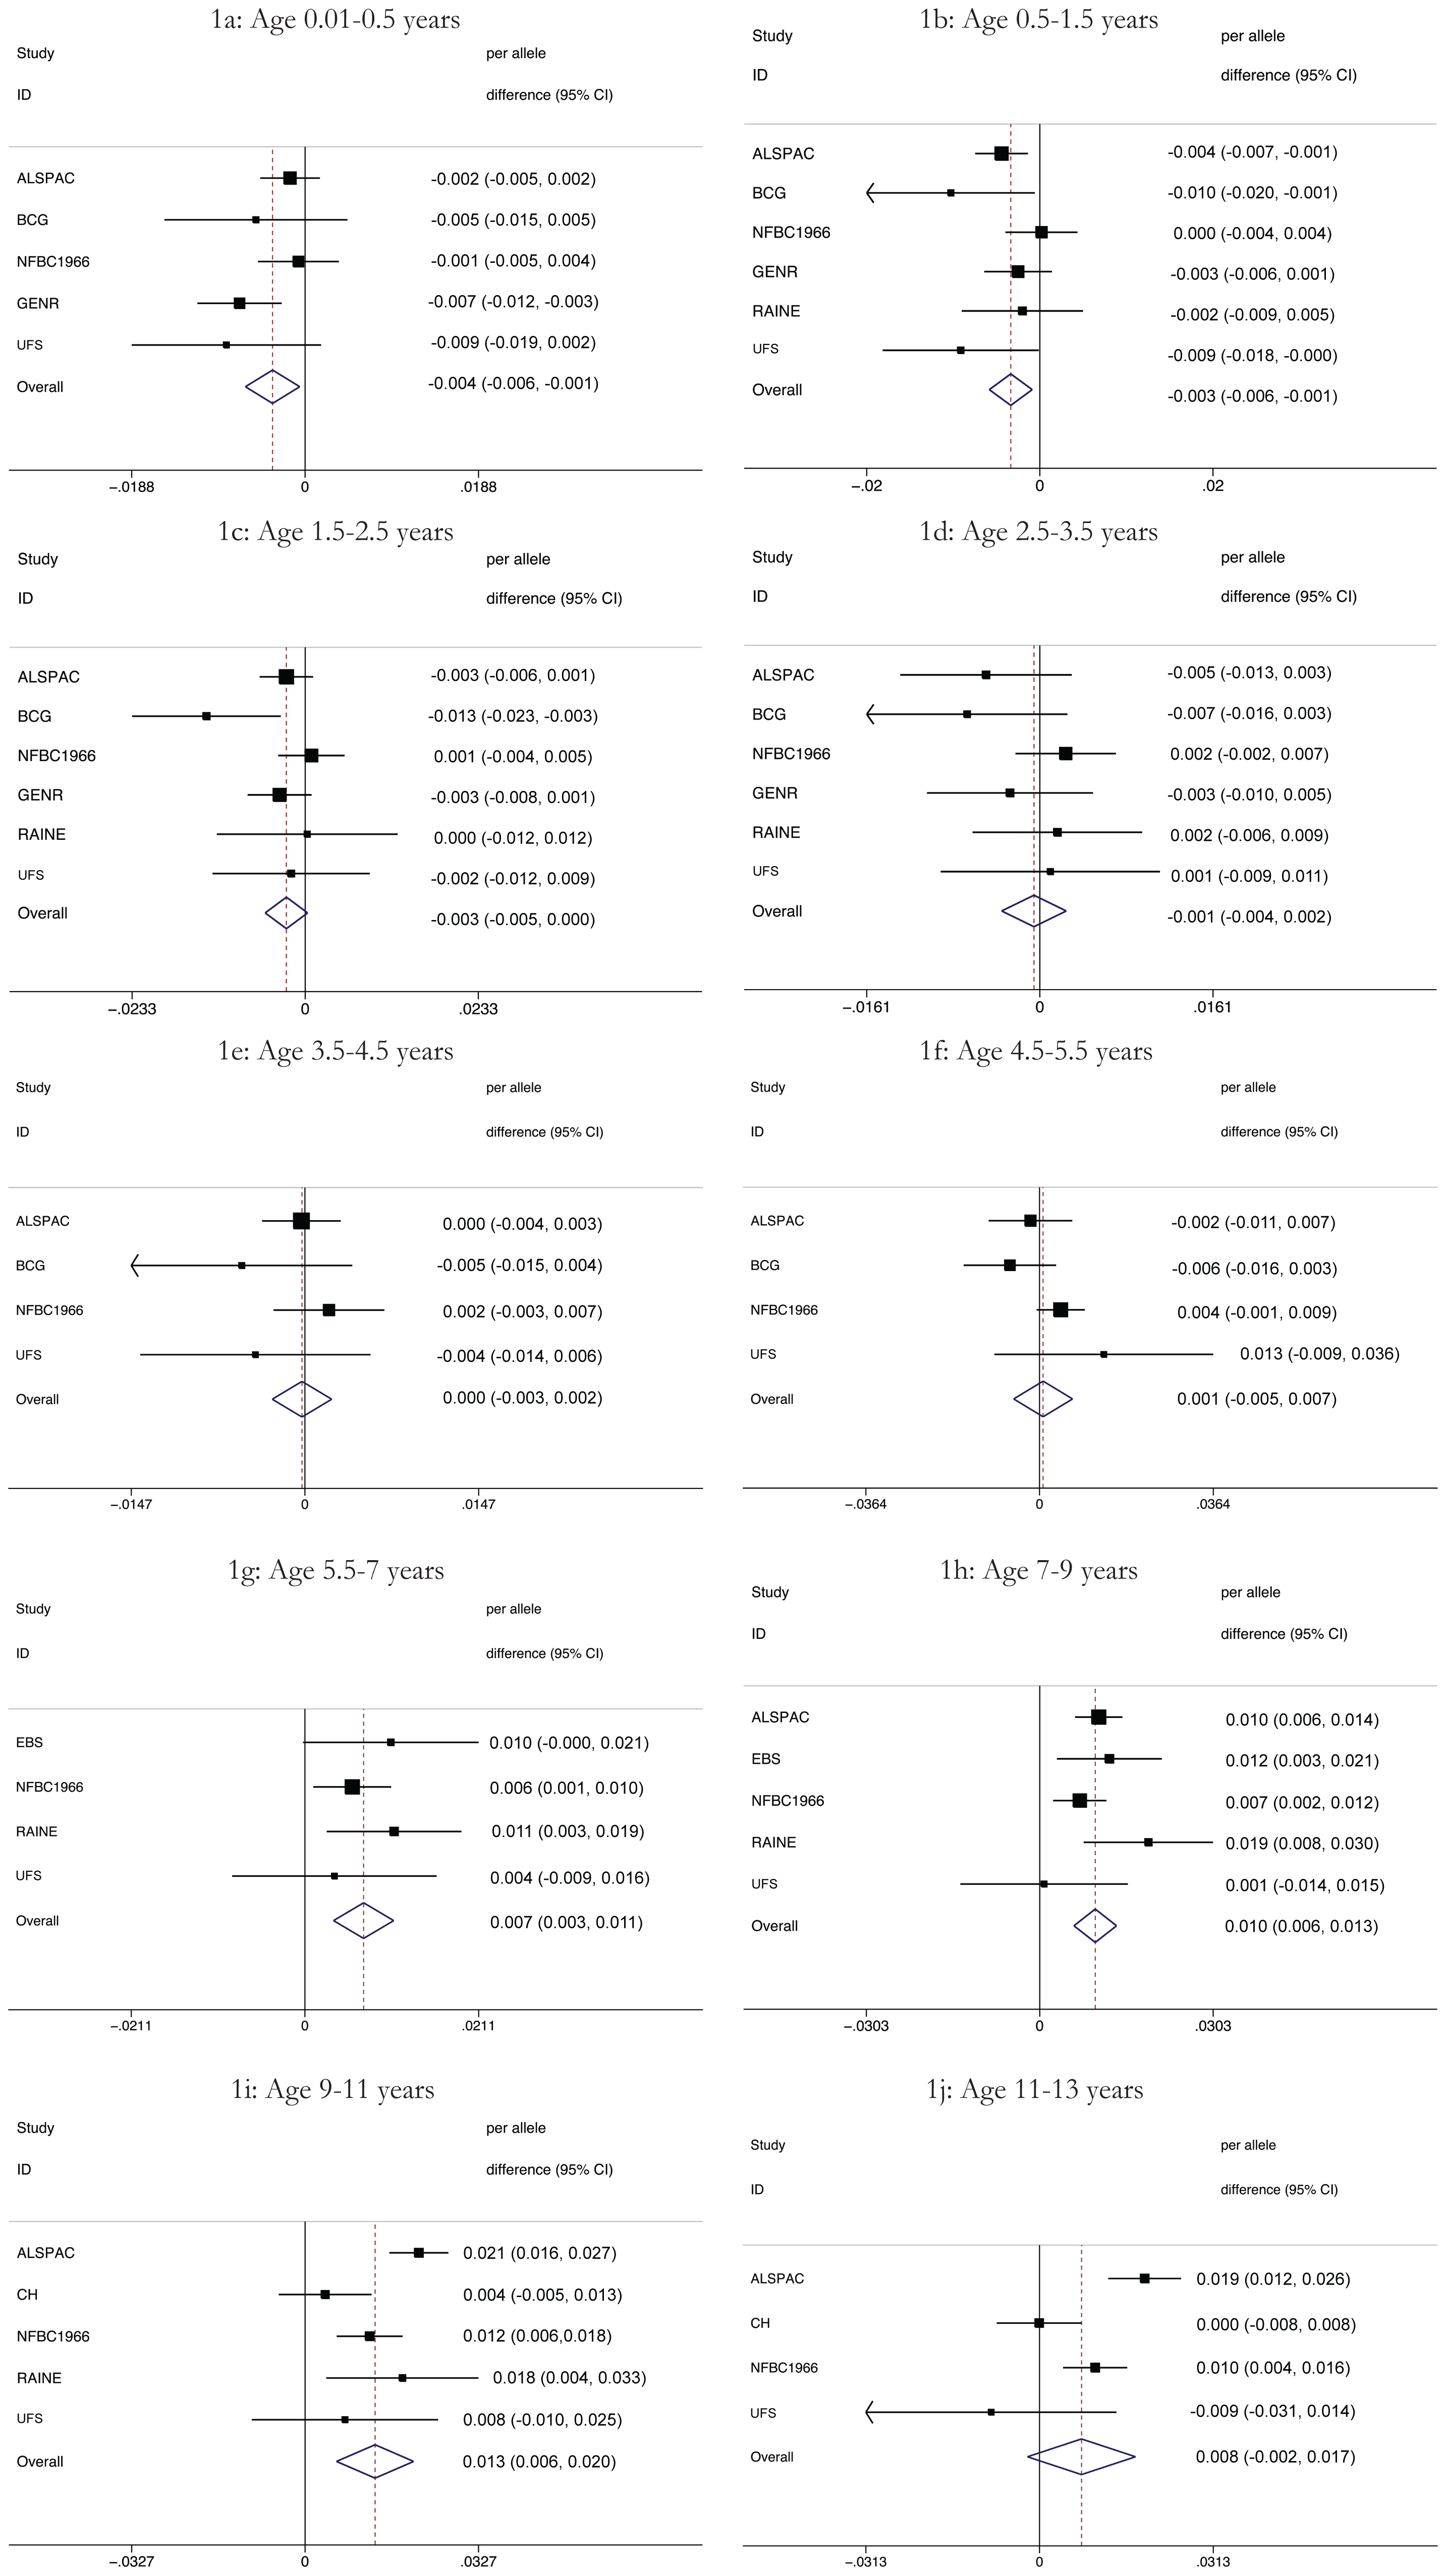 Results of the meta-analyses of the association between each additional minor allele (A) at rs9939609 and BMI by age (1a–1j).